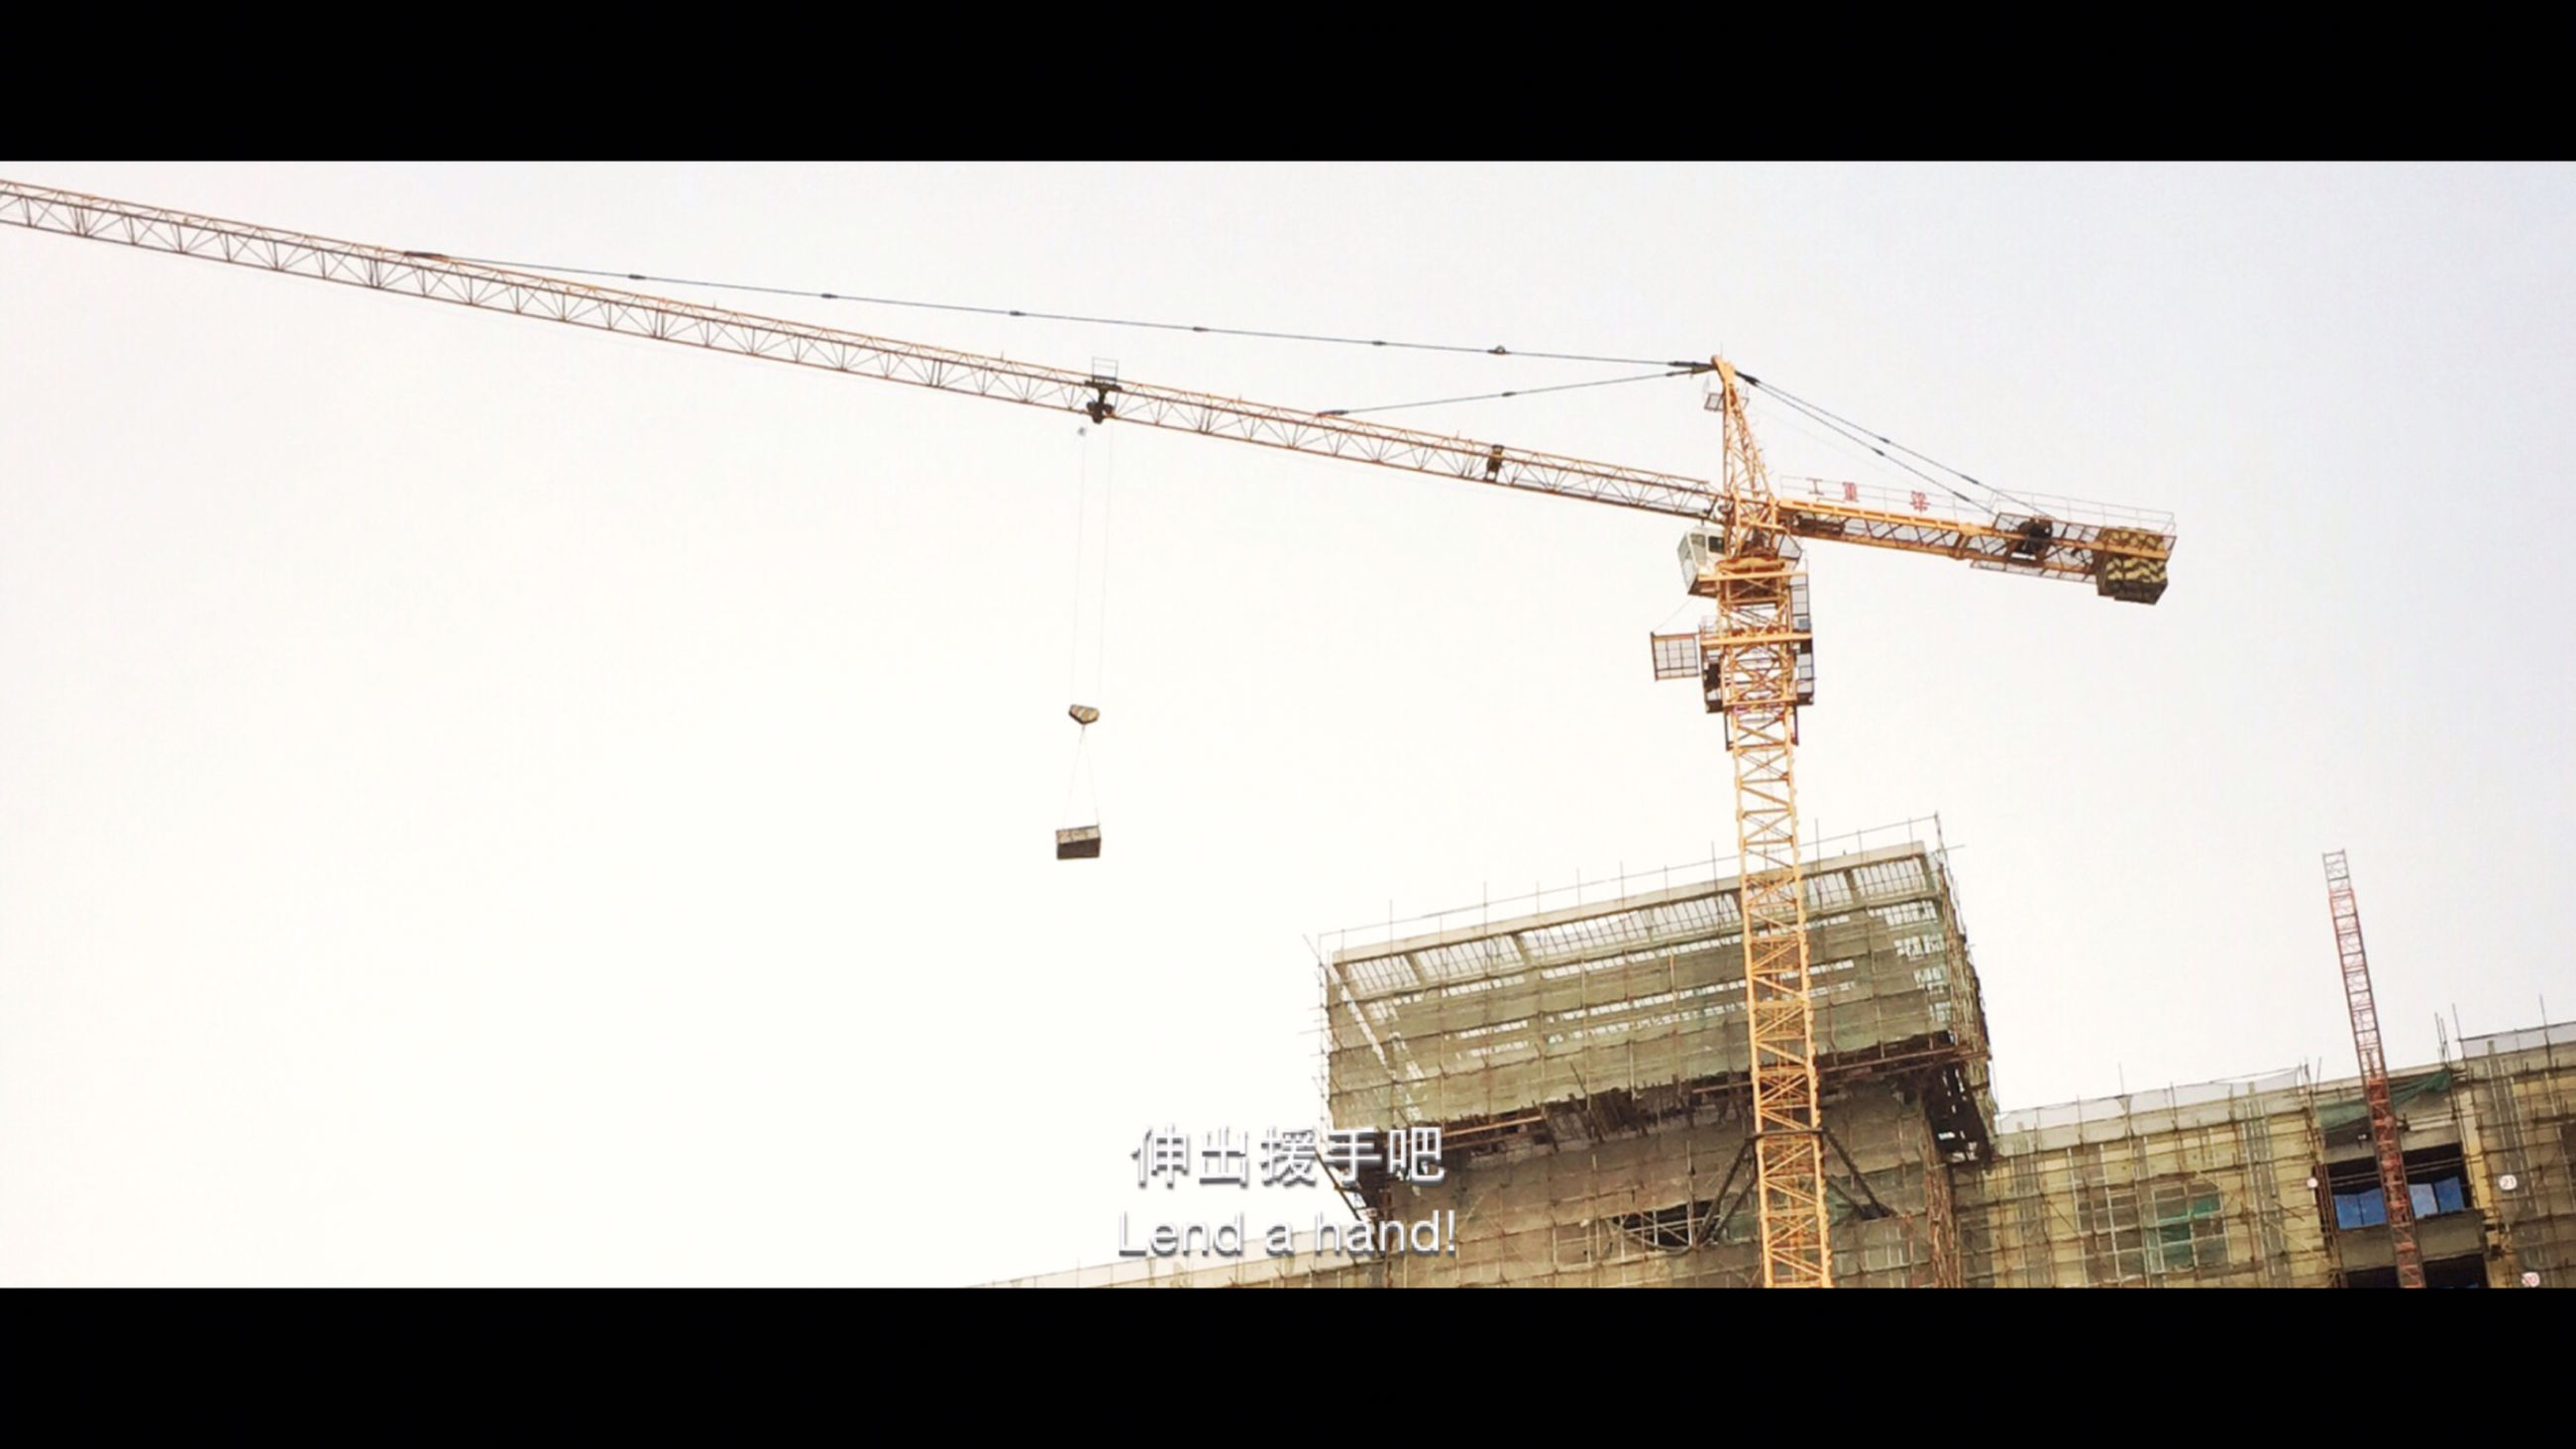 built structure, architecture, low angle view, construction site, crane - construction machinery, clear sky, building exterior, development, construction, transfer print, crane, auto post production filter, copy space, technology, fuel and power generation, industry, incomplete, tall - high, outdoors, tower